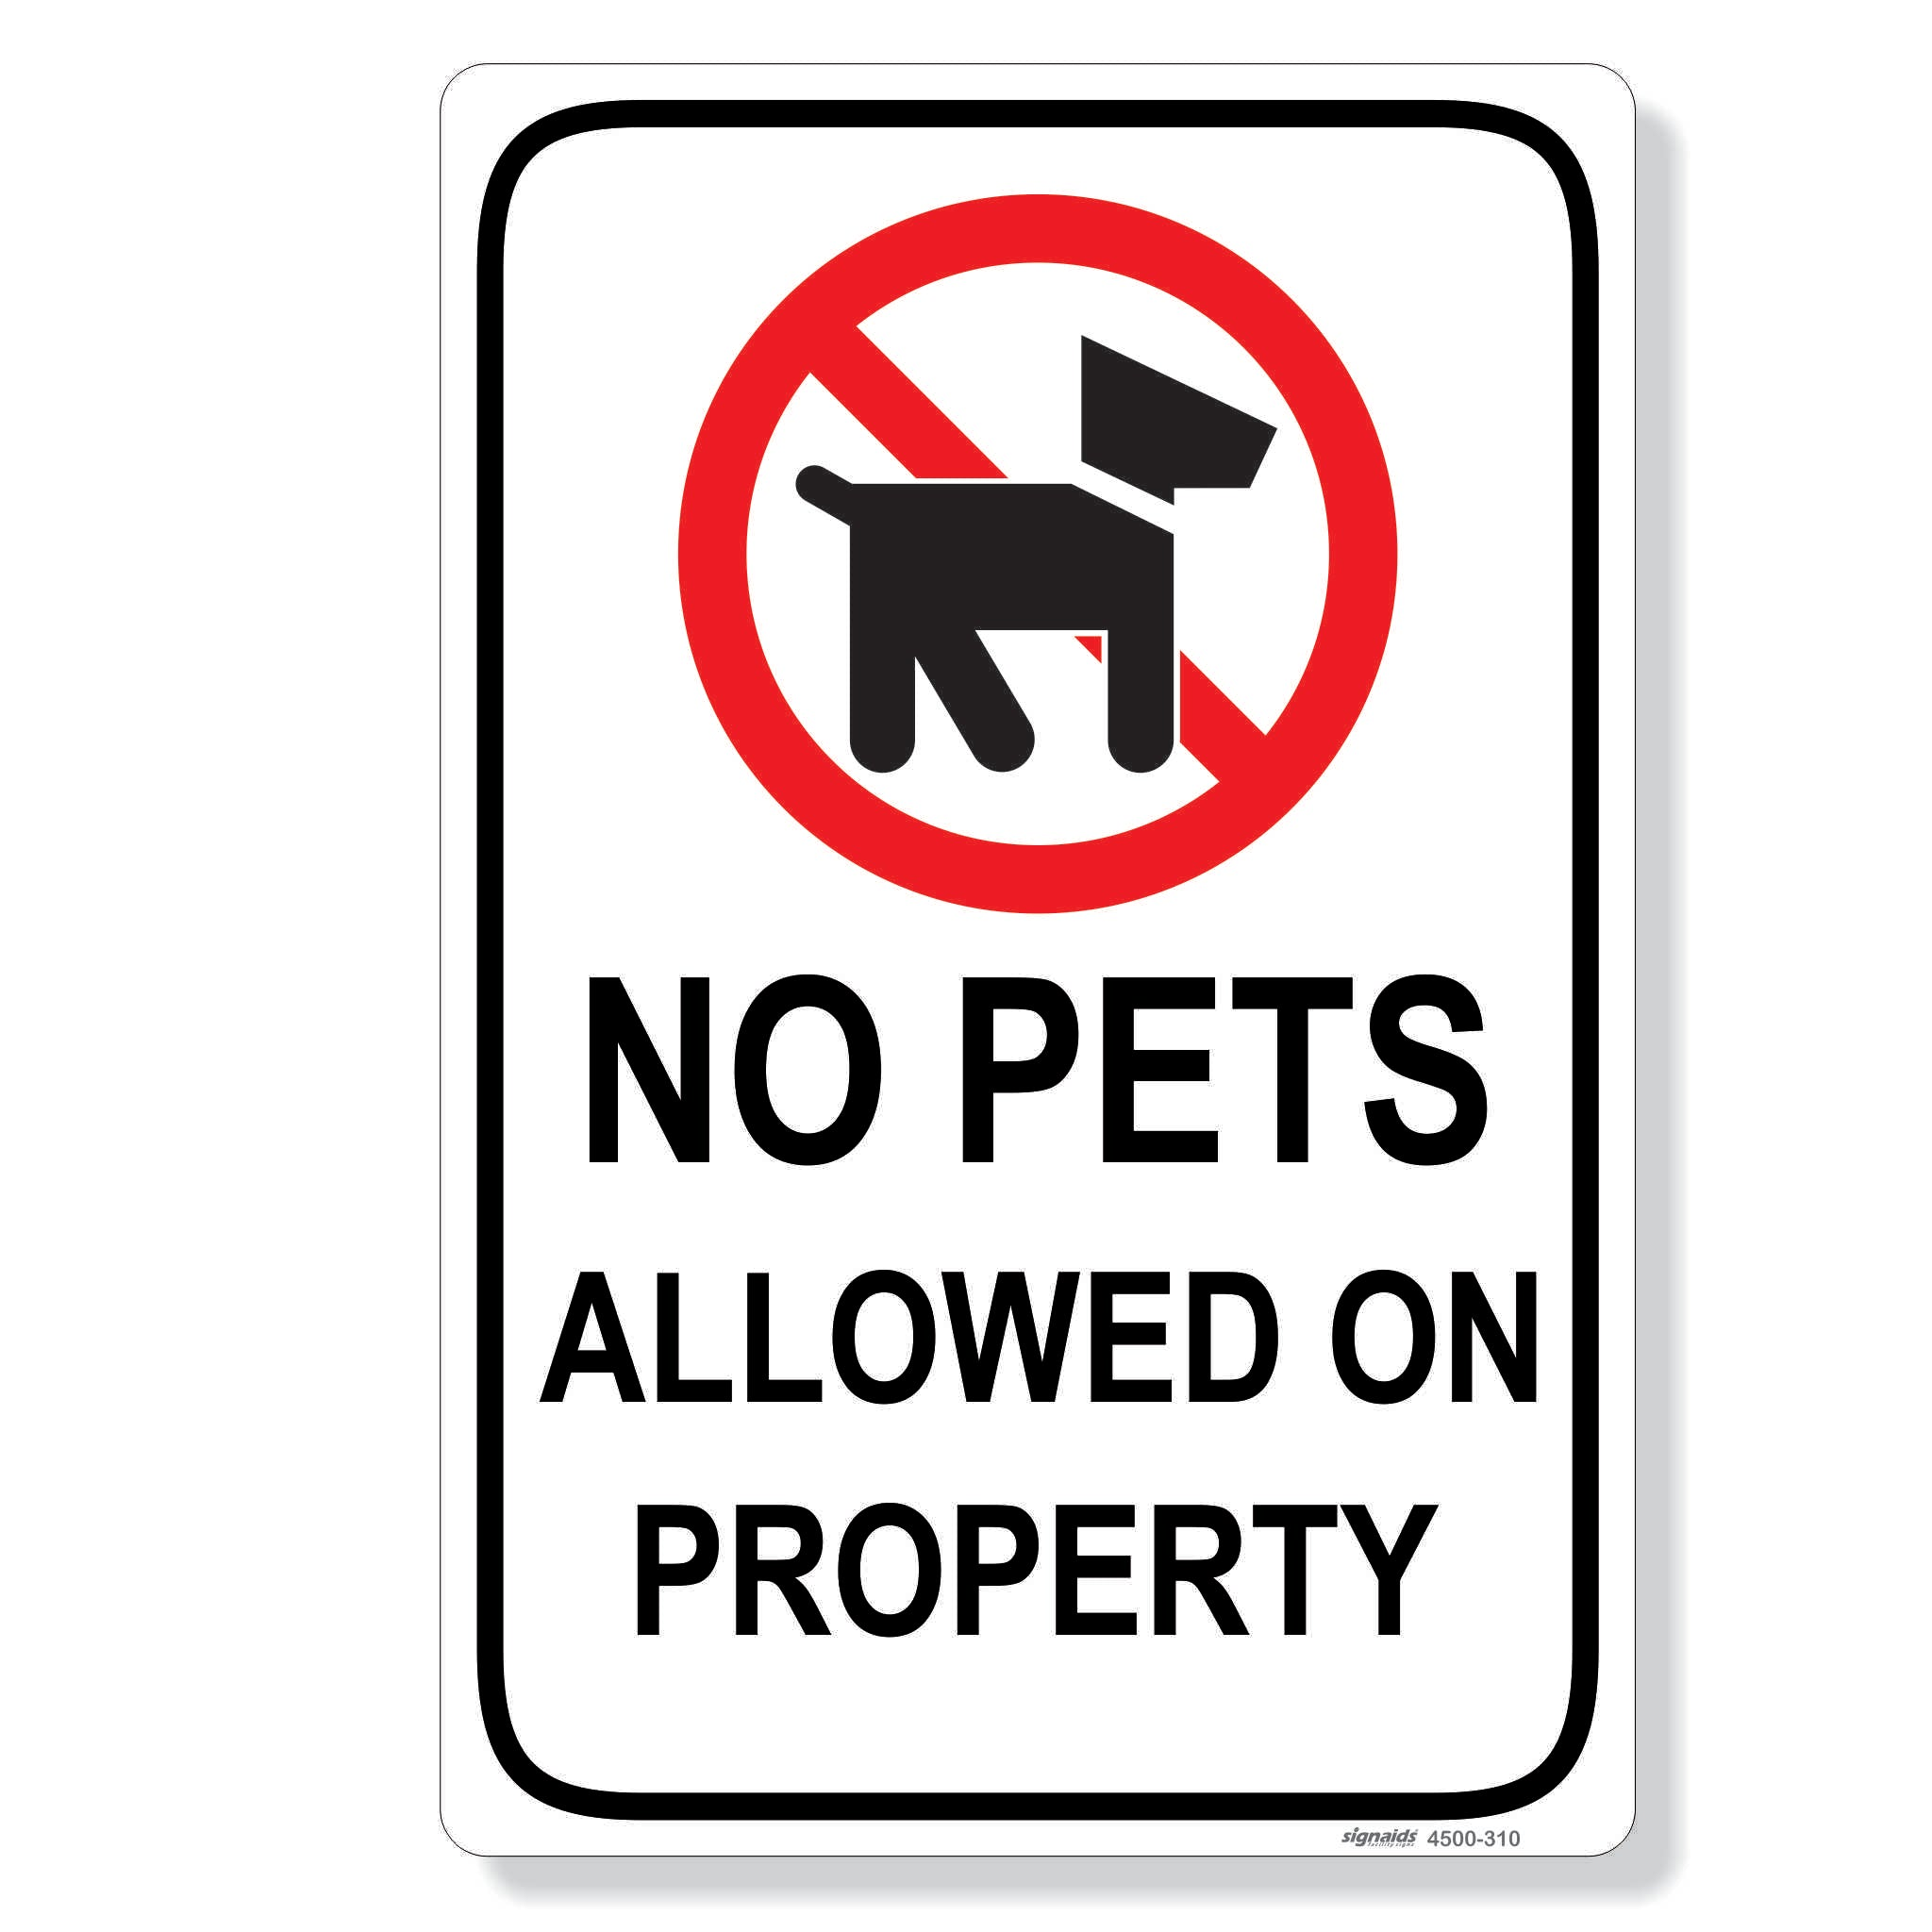 12 x 18 NO PETS ALLOWED ON PROPERTY